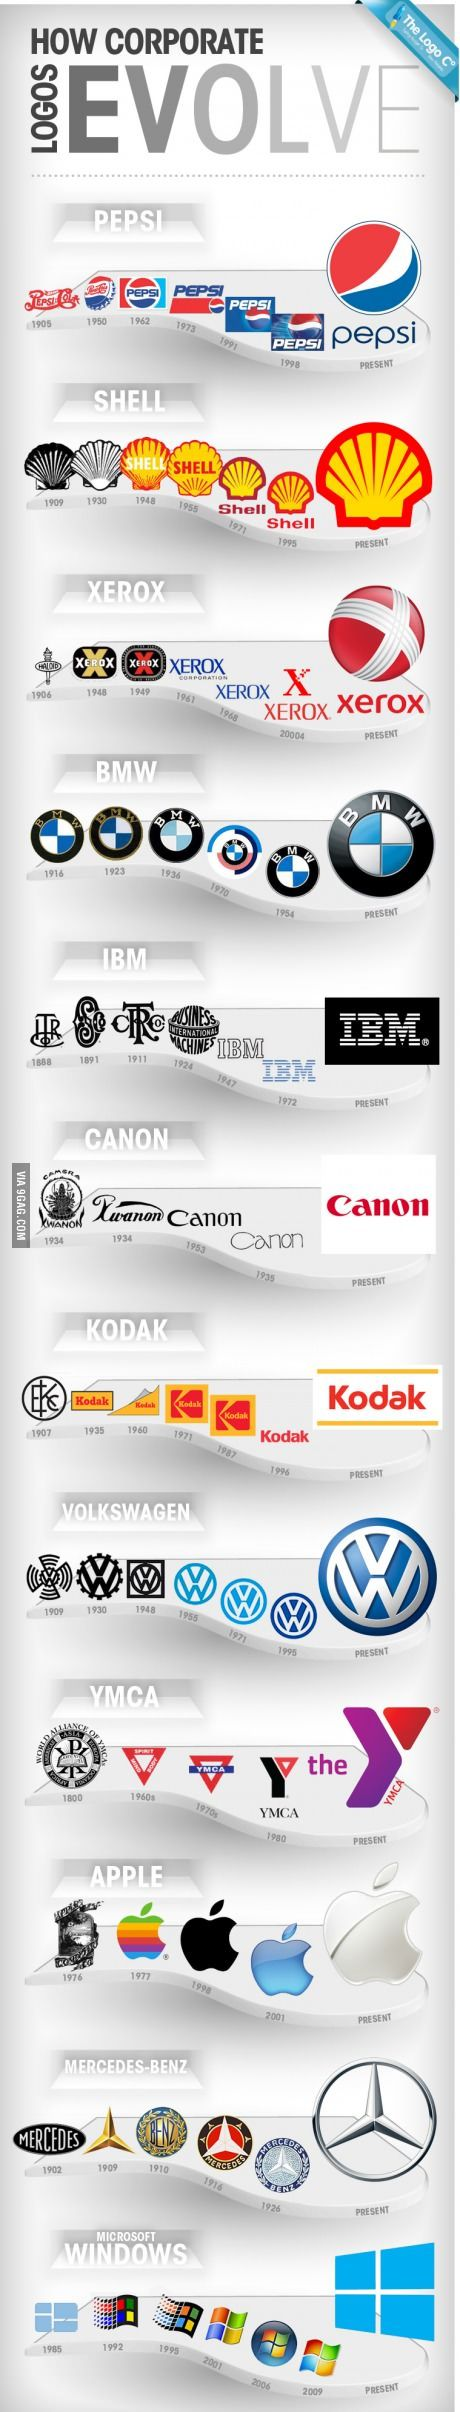 How some corporate logos evolved. Check out Apple!